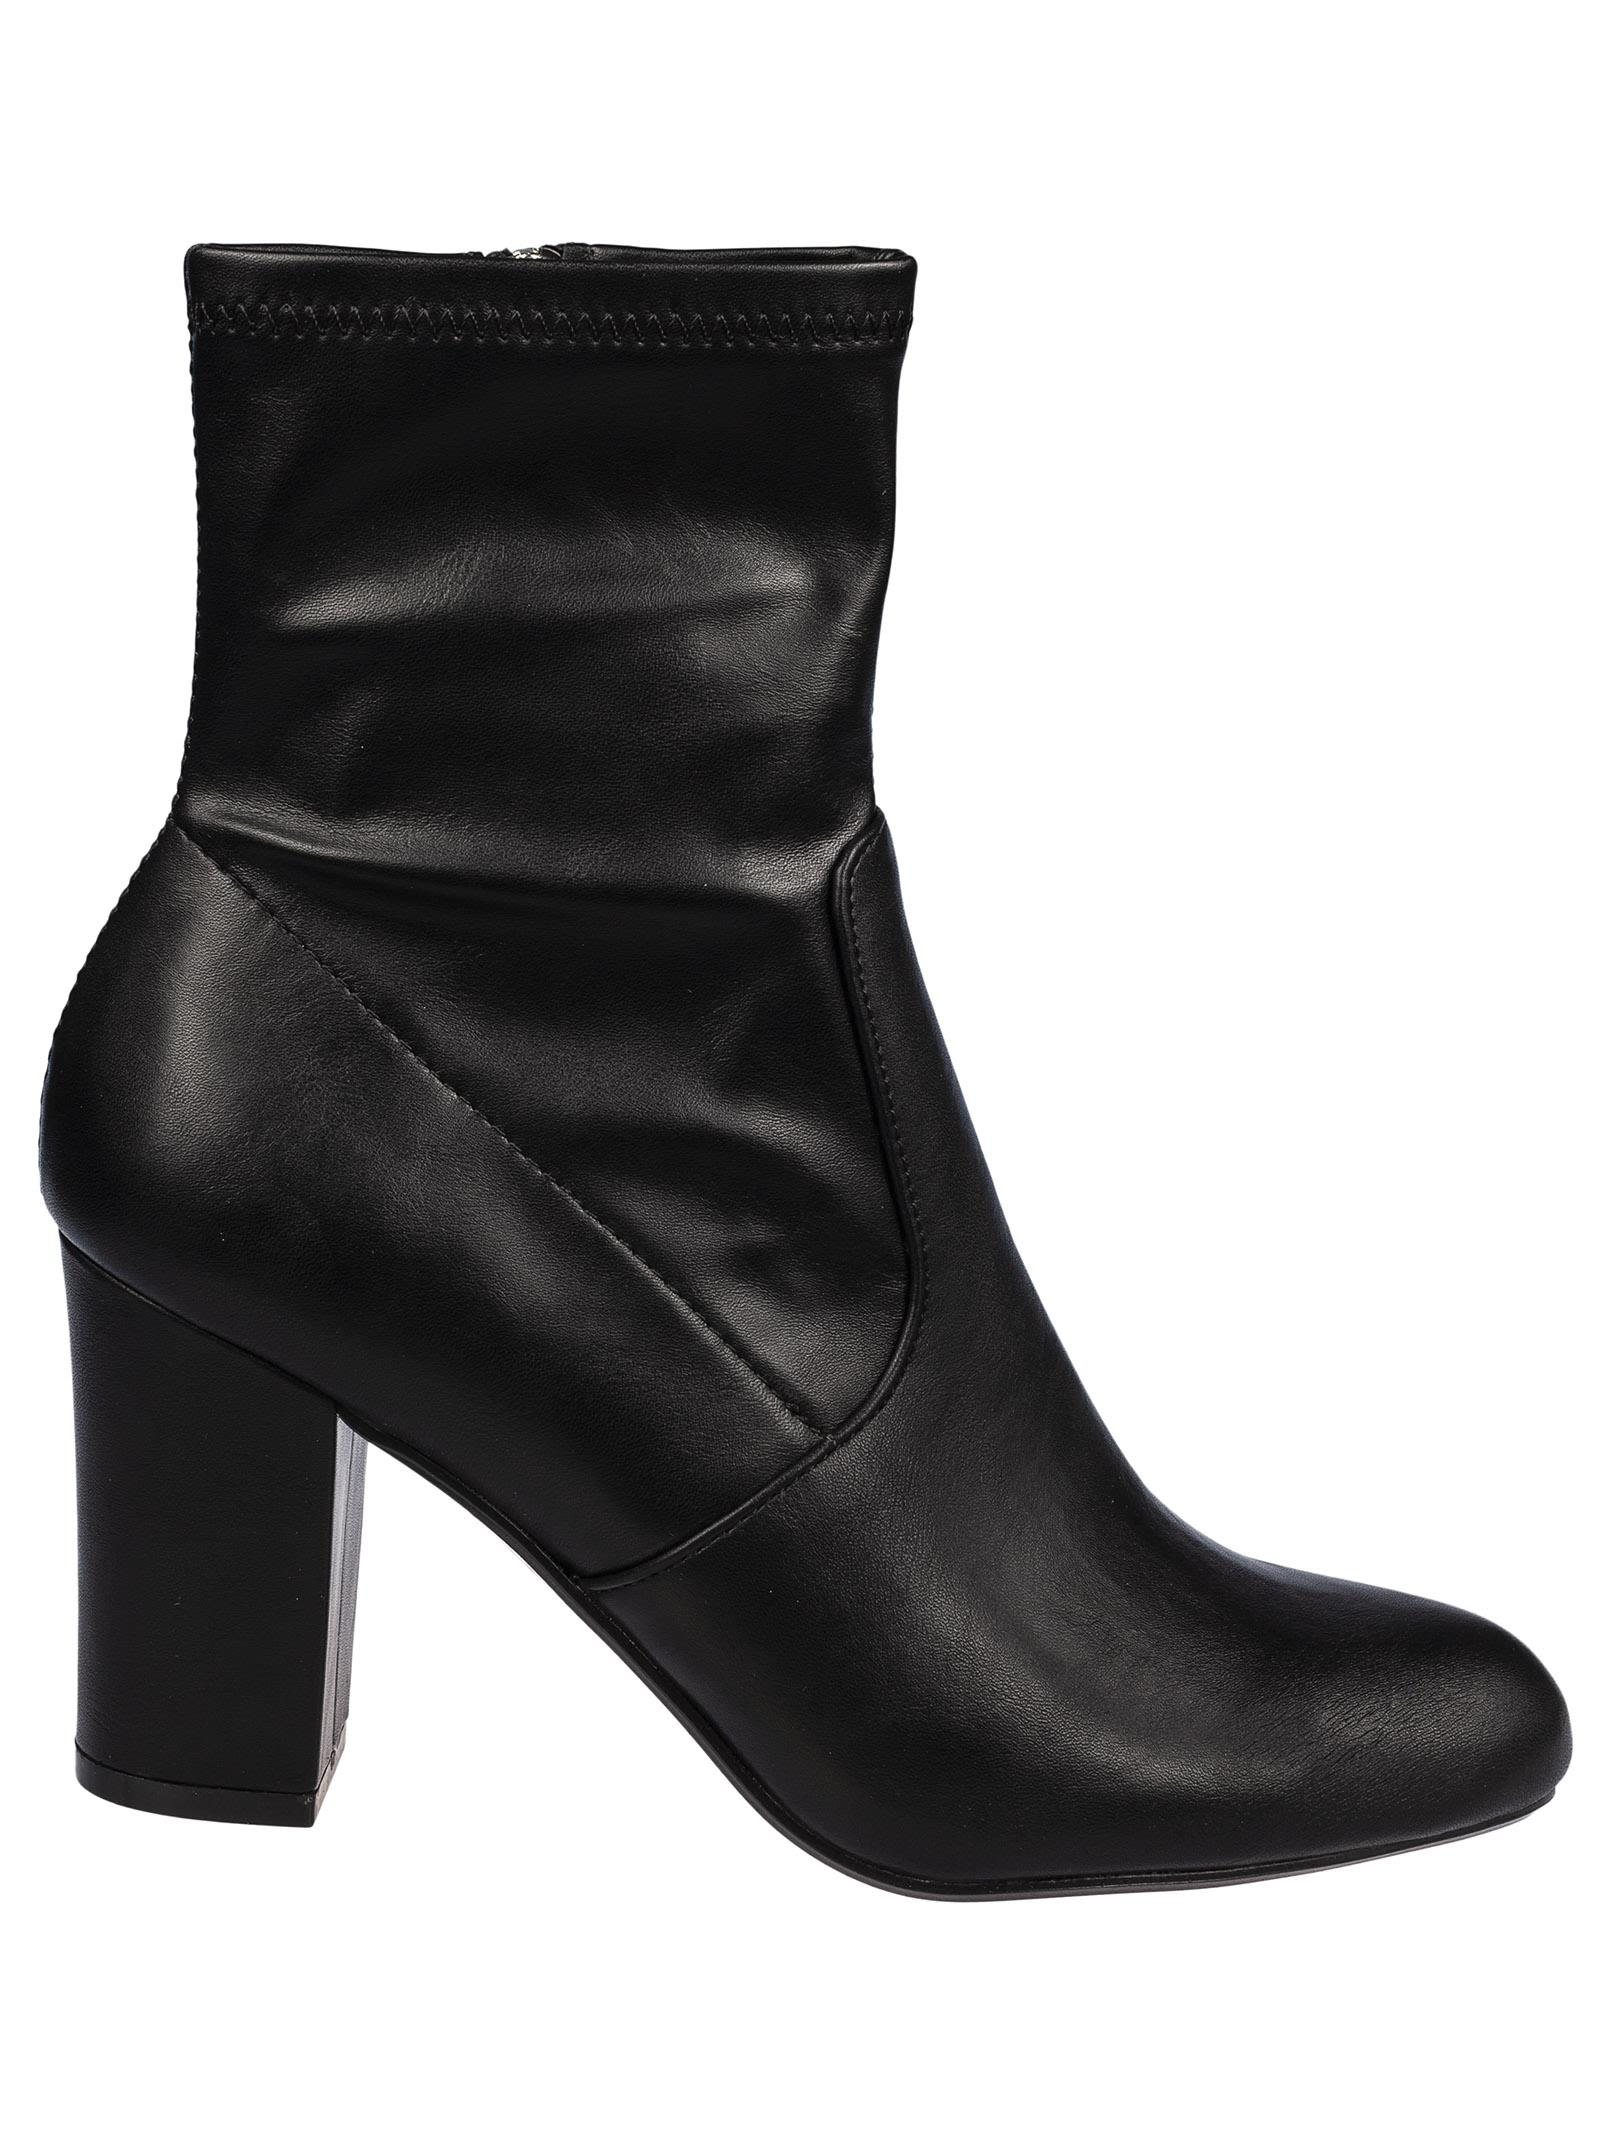 Steve Madden Zipped Ankle Boots